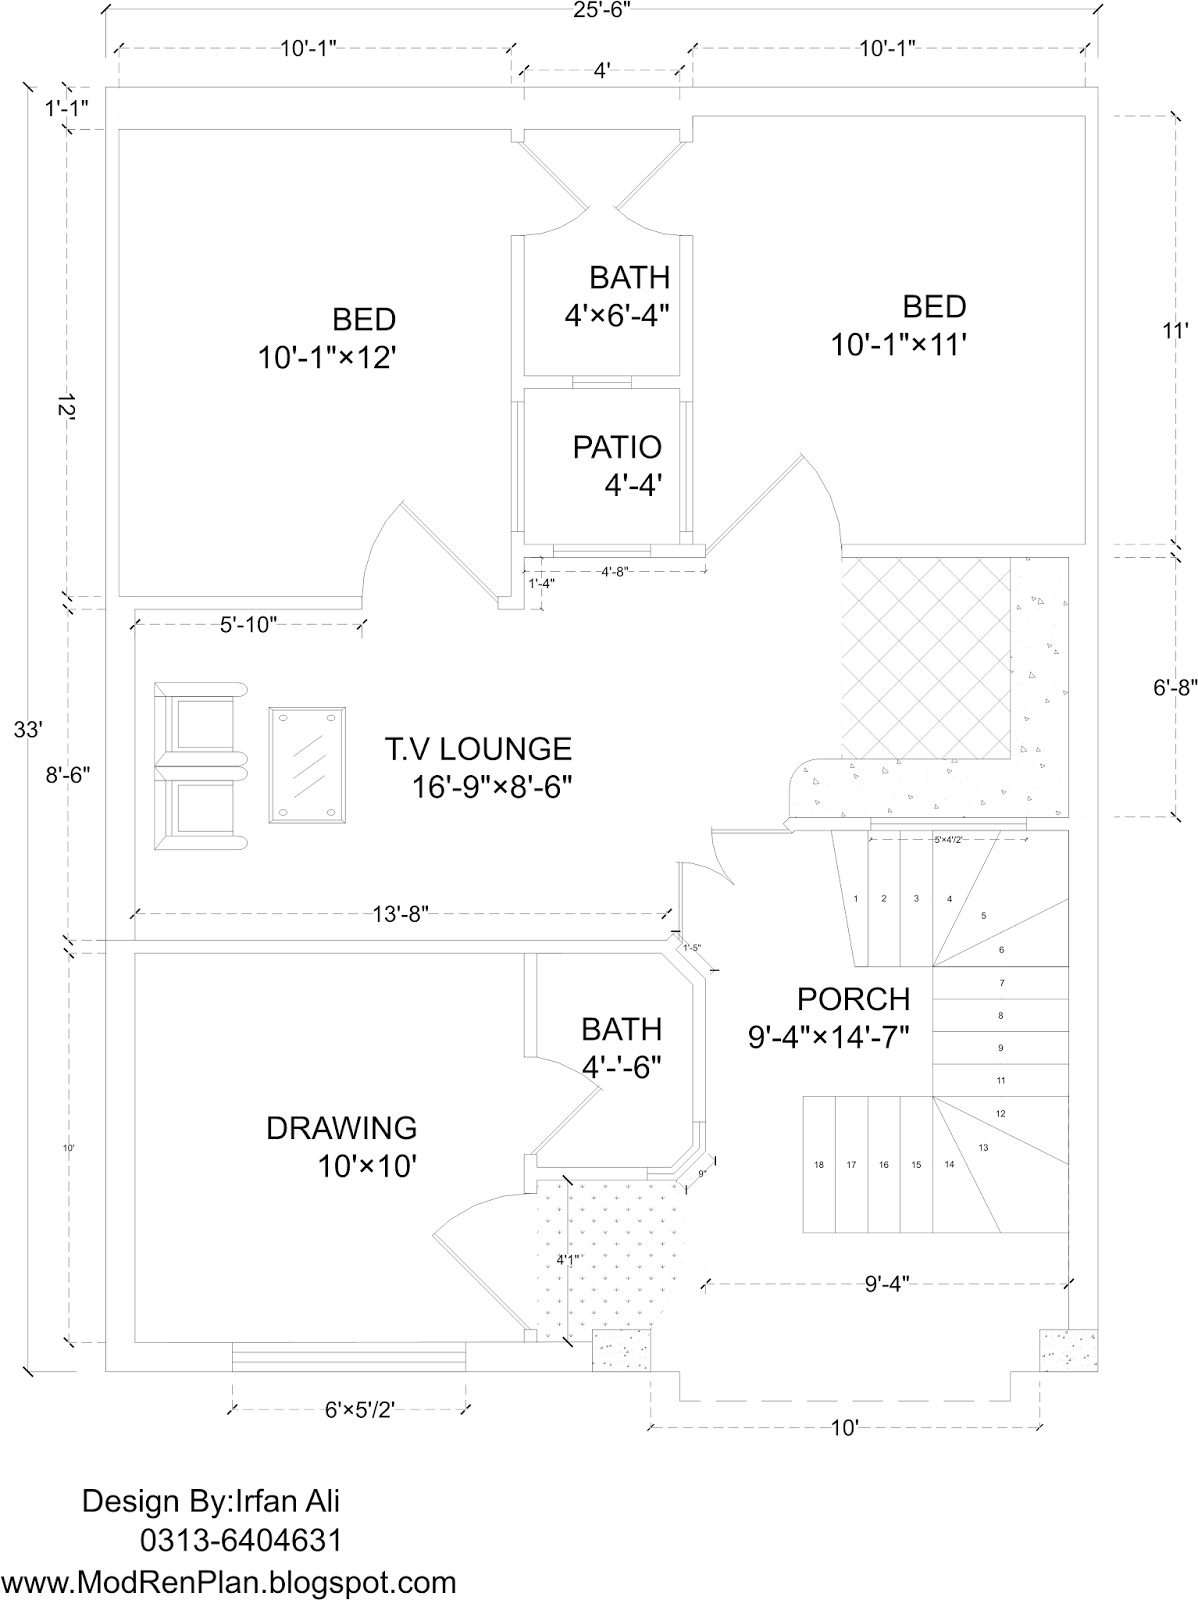 Marla house plan and map with detail 25x33 house plan